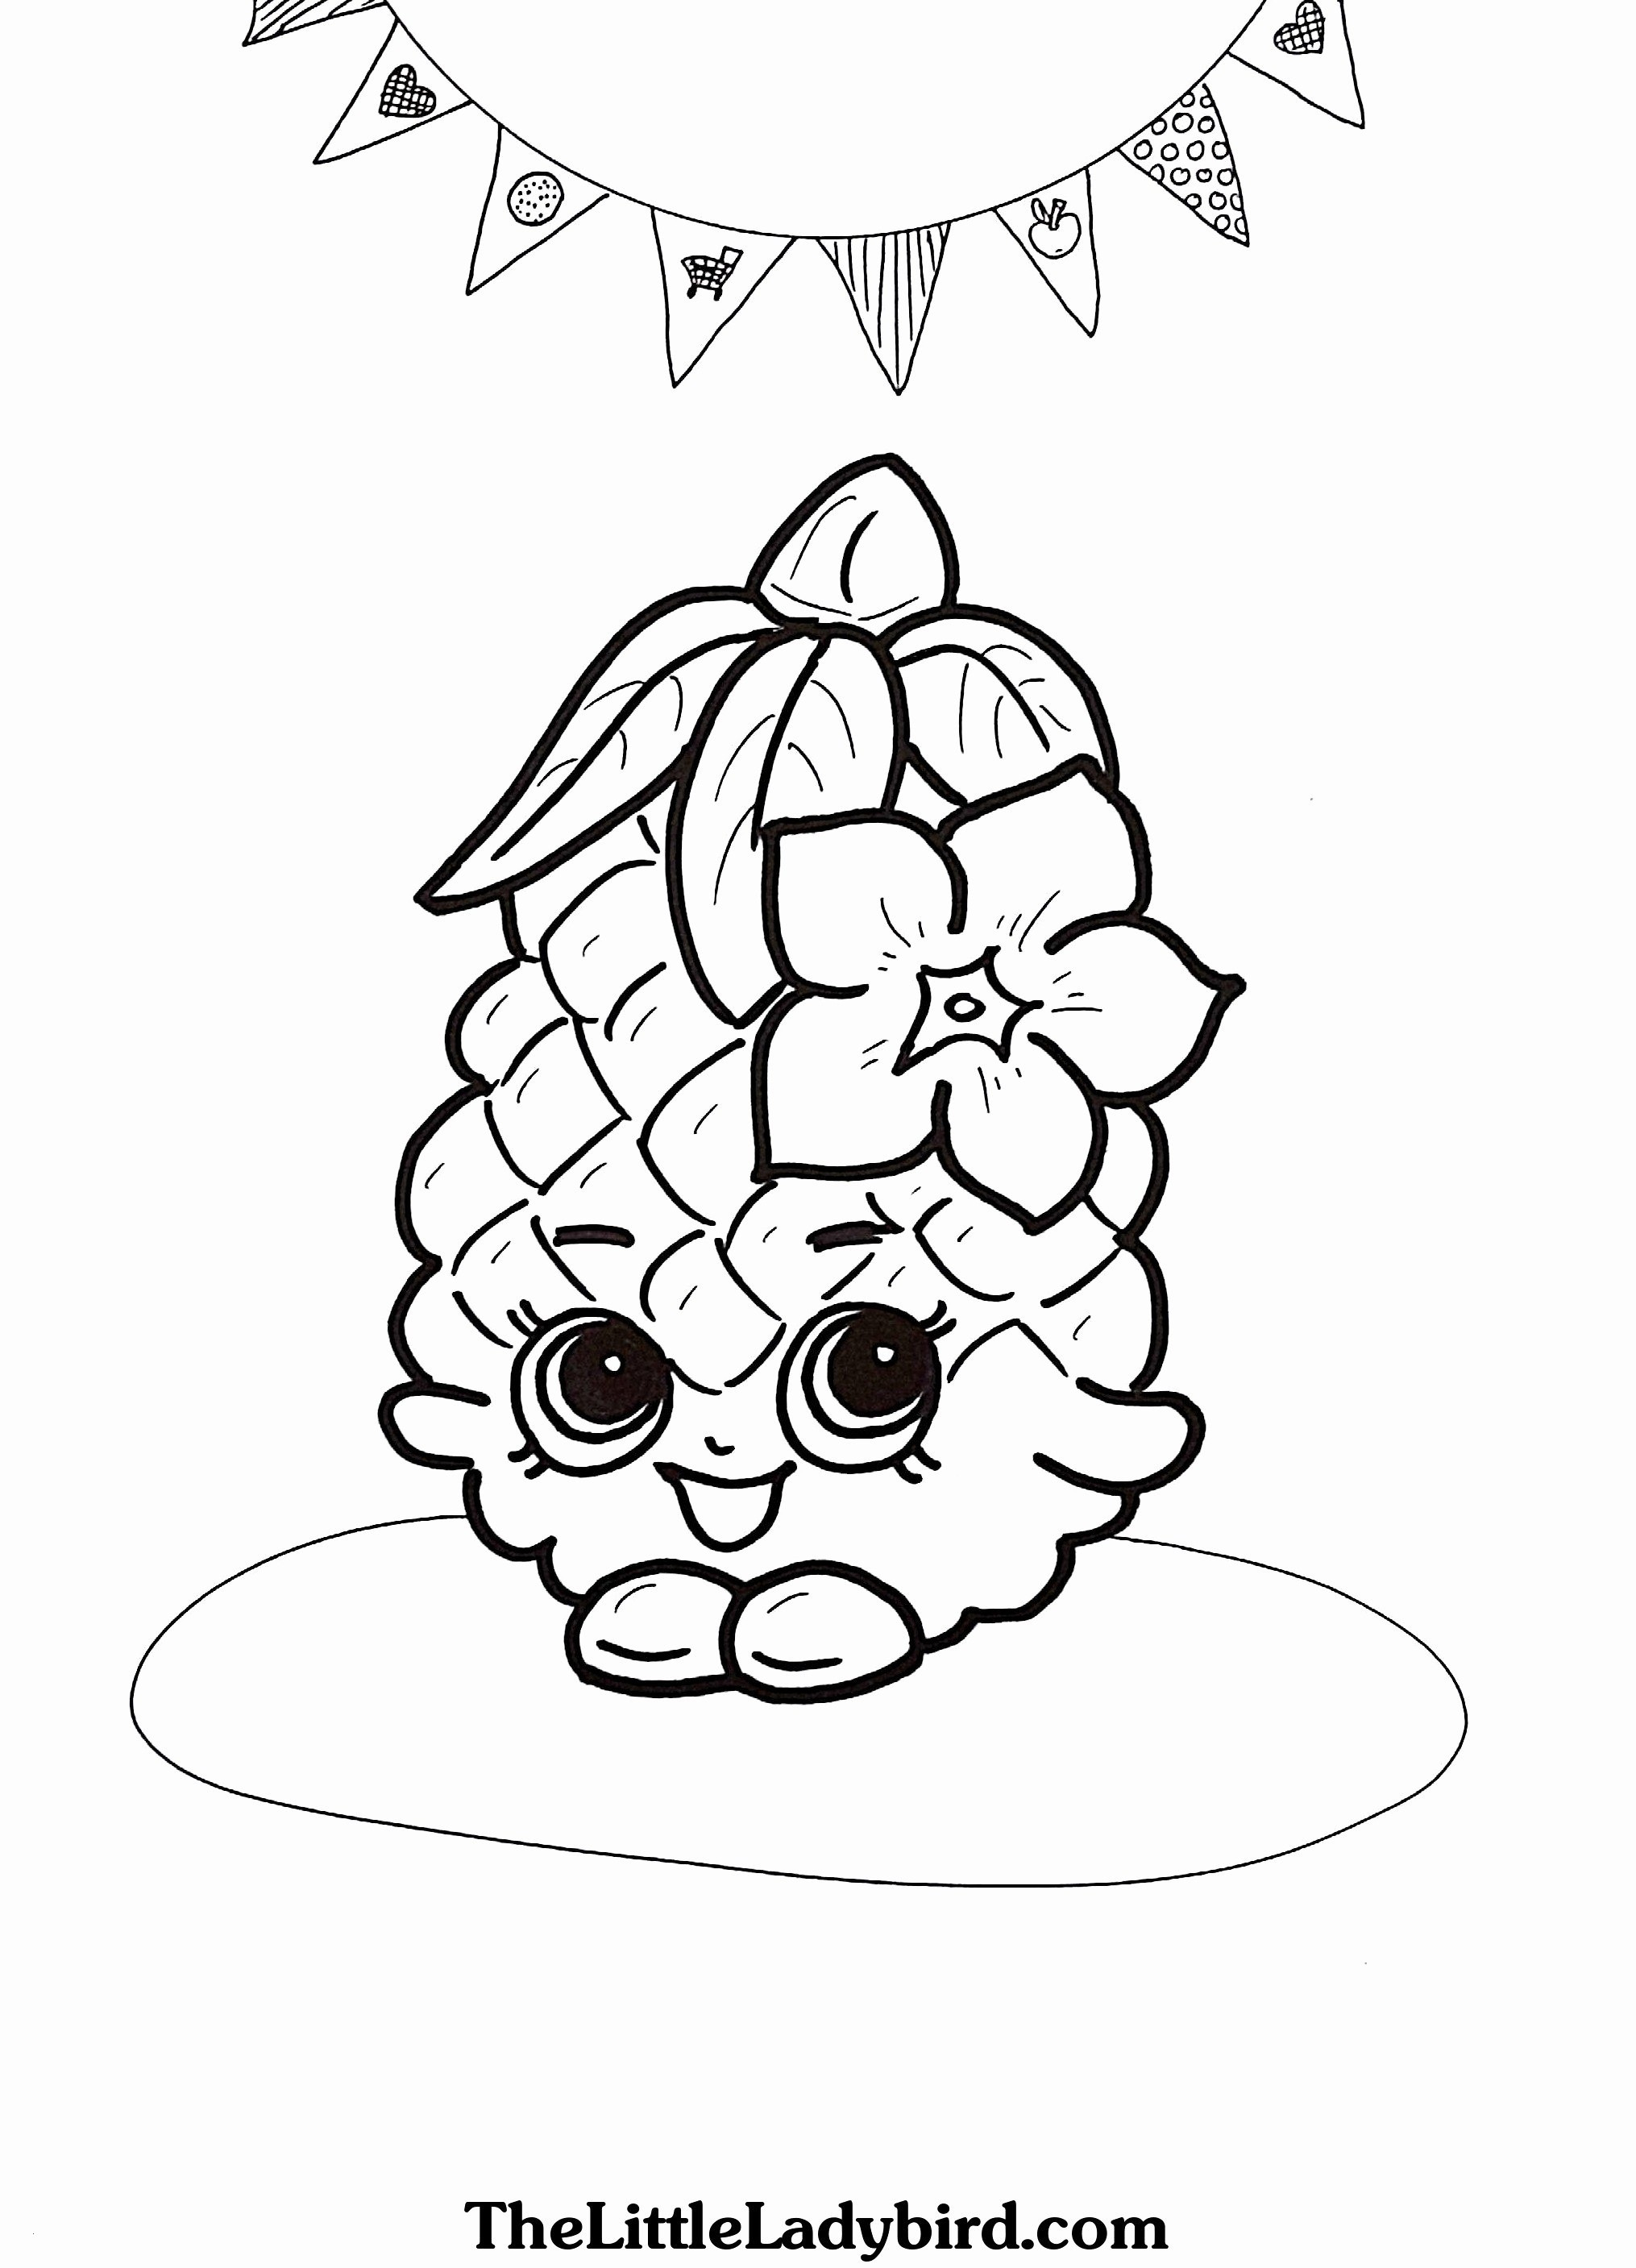 Framed Coloring Pages  Download 5b - Save it to your computer